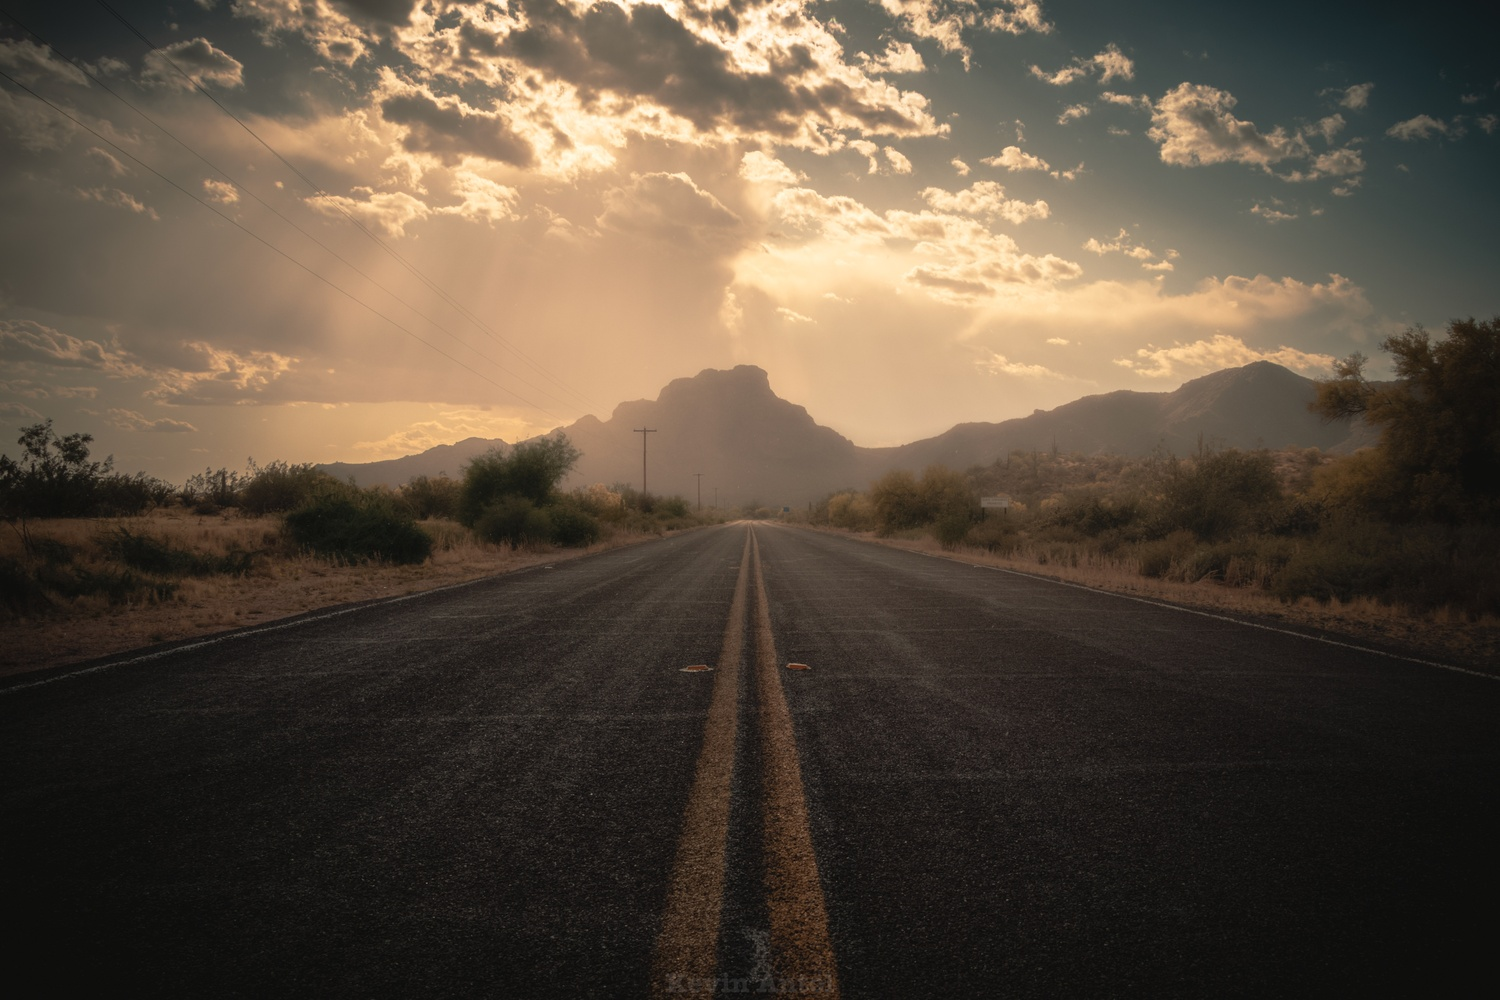 Road Alone by Kevin Antol